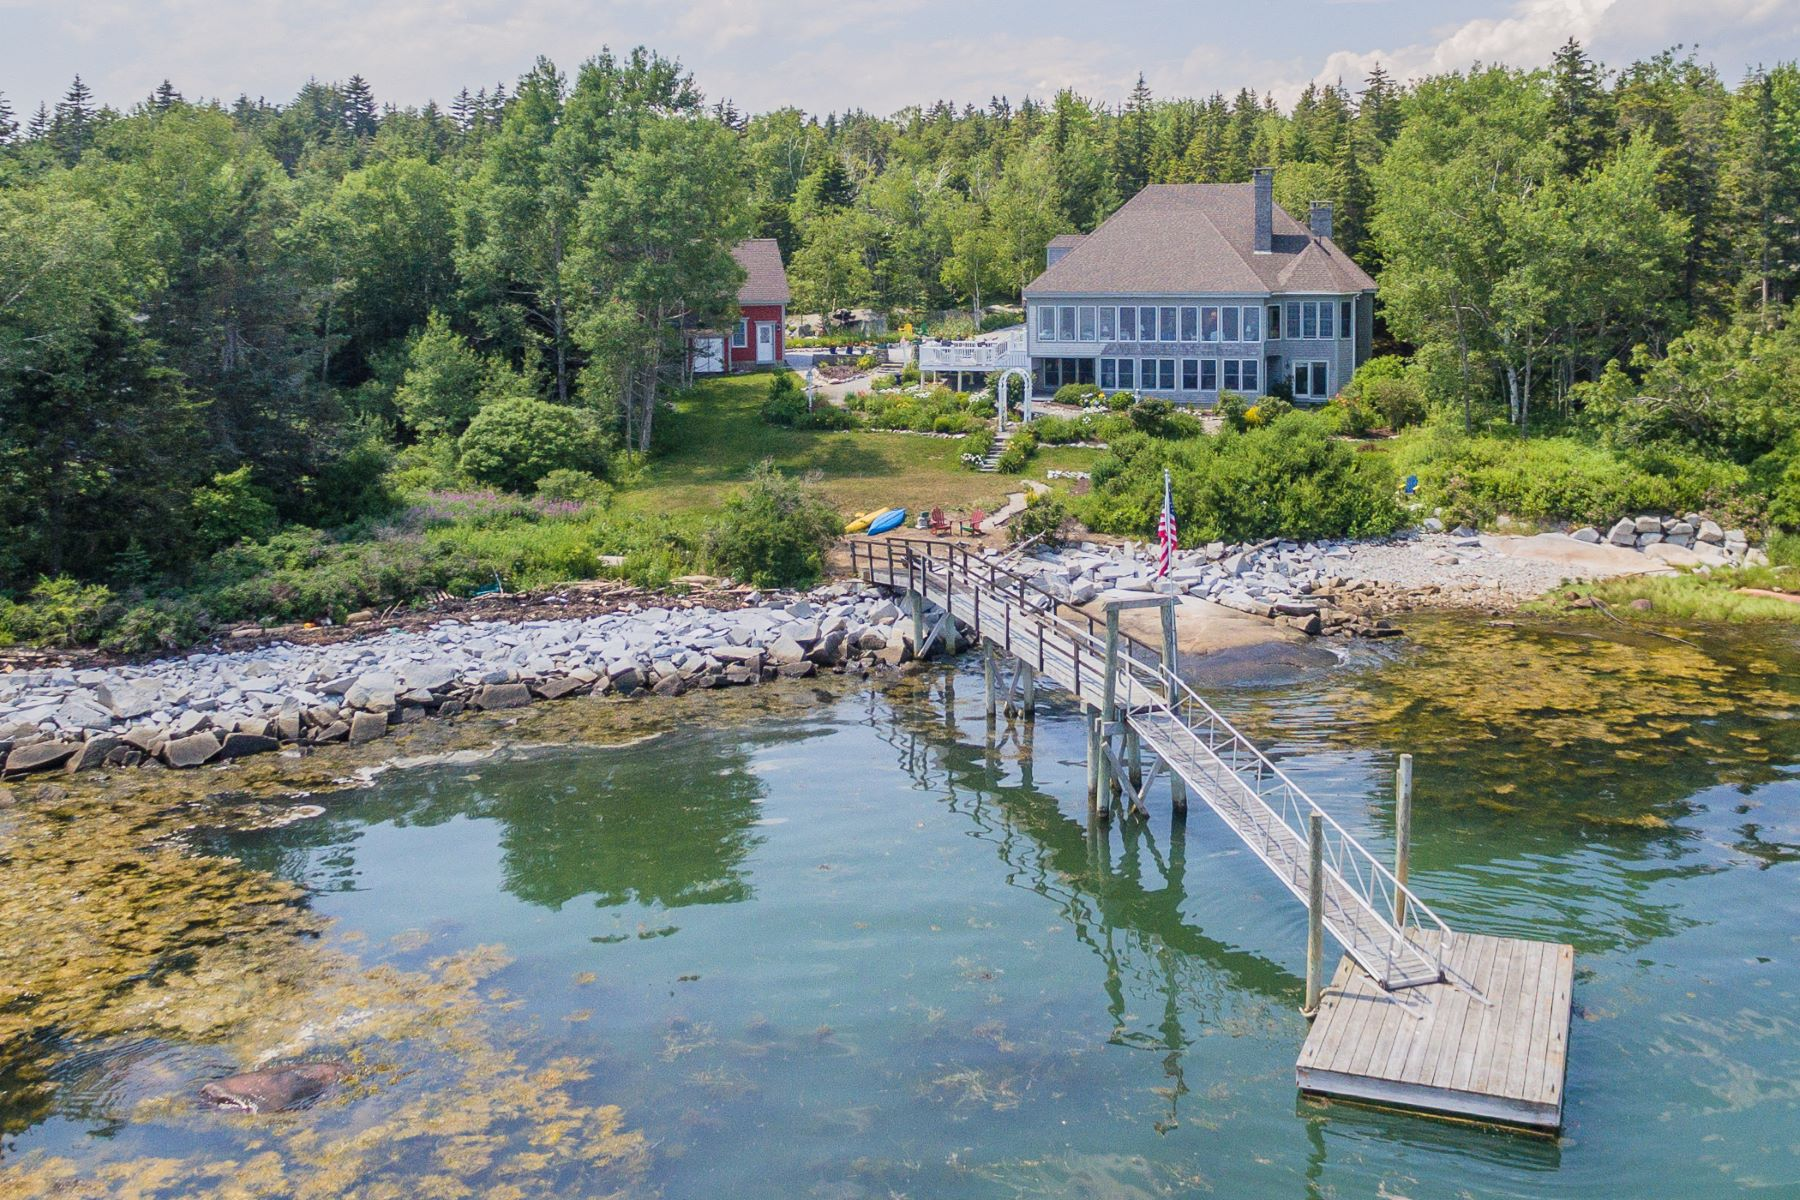 Single Family Home for Sale at 313 Island Ave St. George, Maine 04859 United States